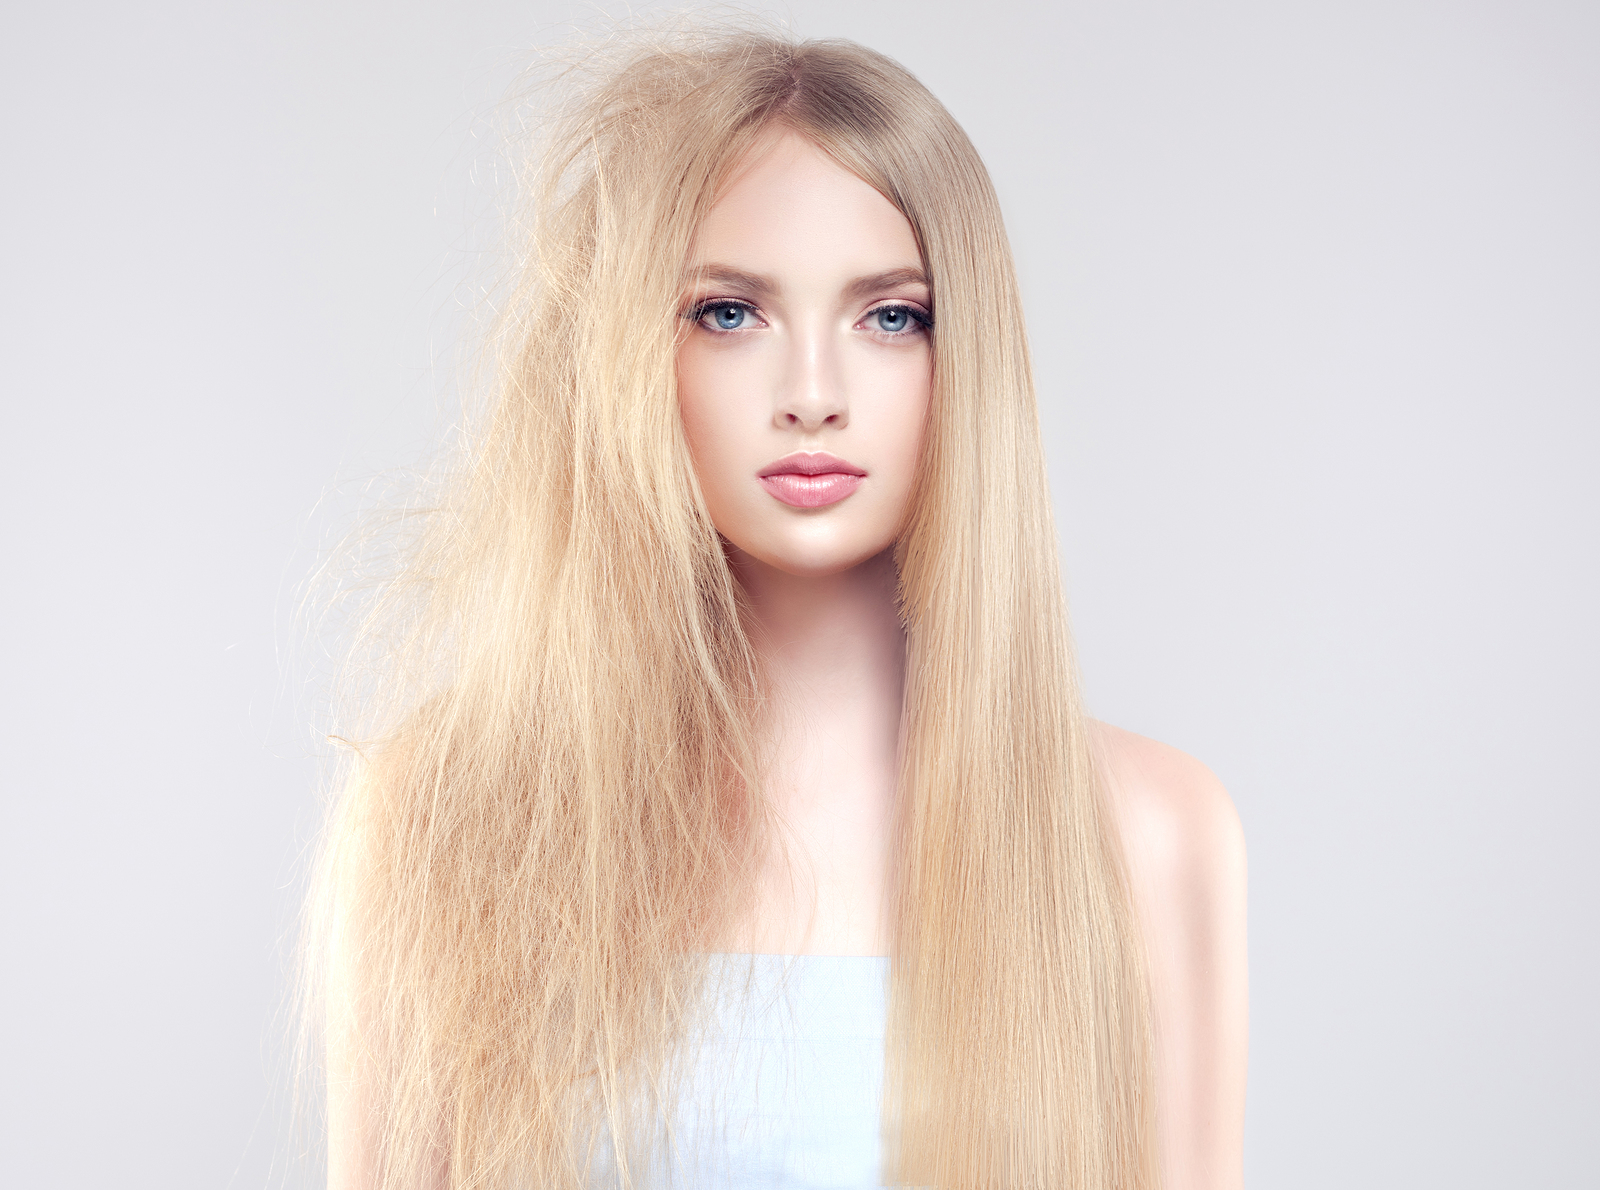 The 5 Safest Ways to Straighten Your Hair Without Damage